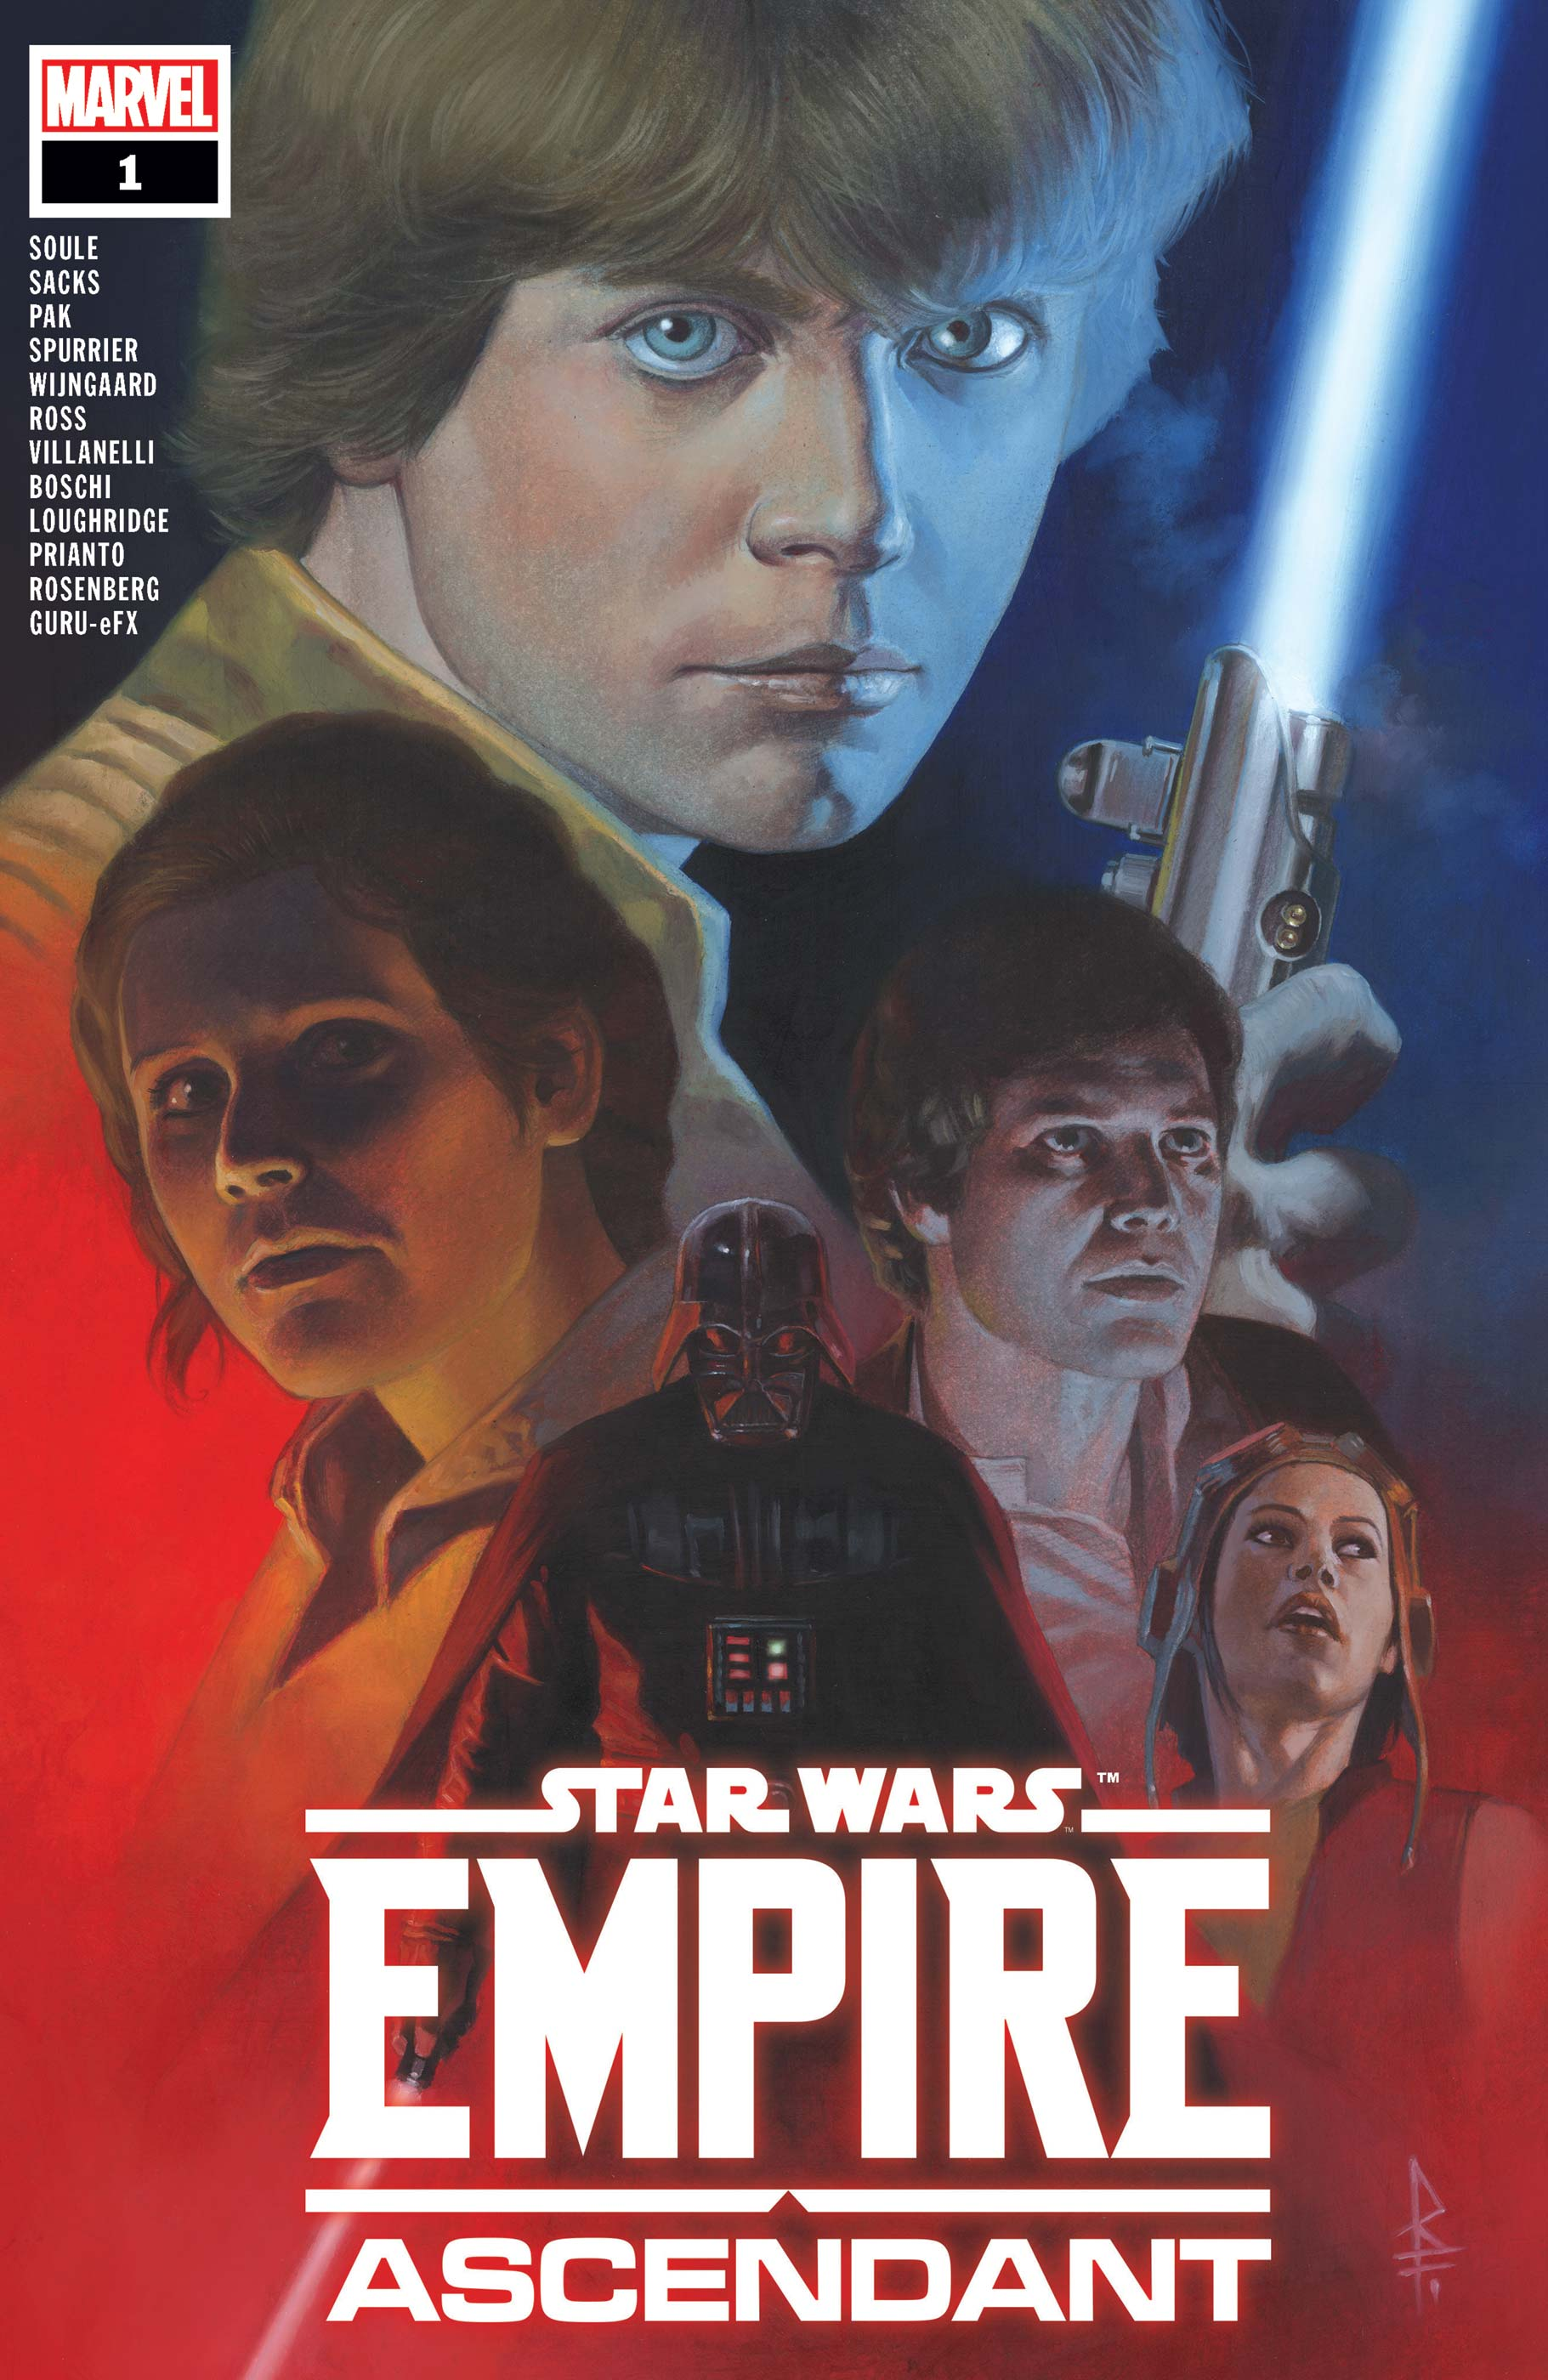 Star Wars: Empire Ascendant (2019) #1